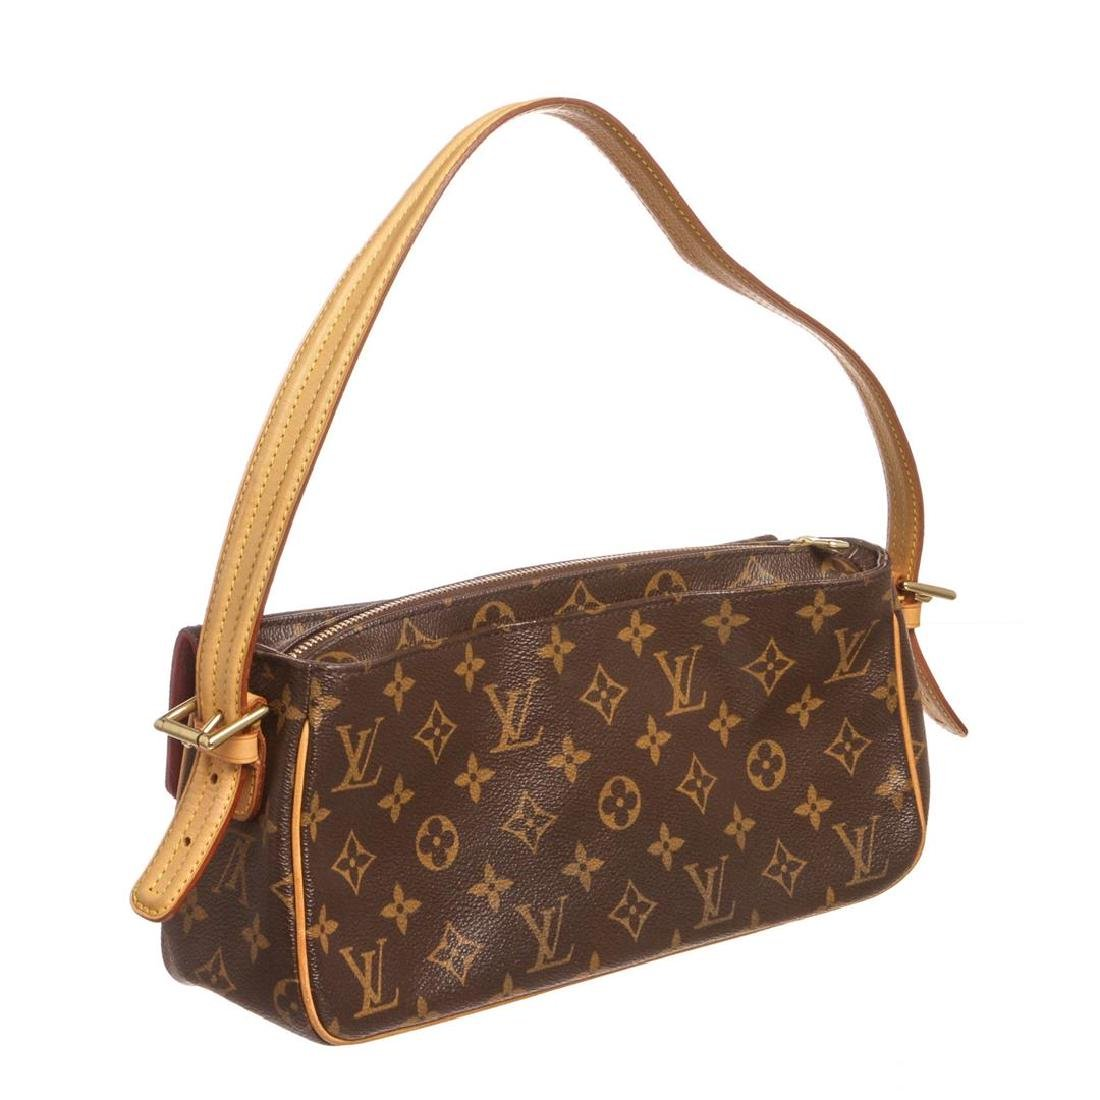 Louis Vuitton Monogram Canvas Leather Viva Cite MM Bag - 3